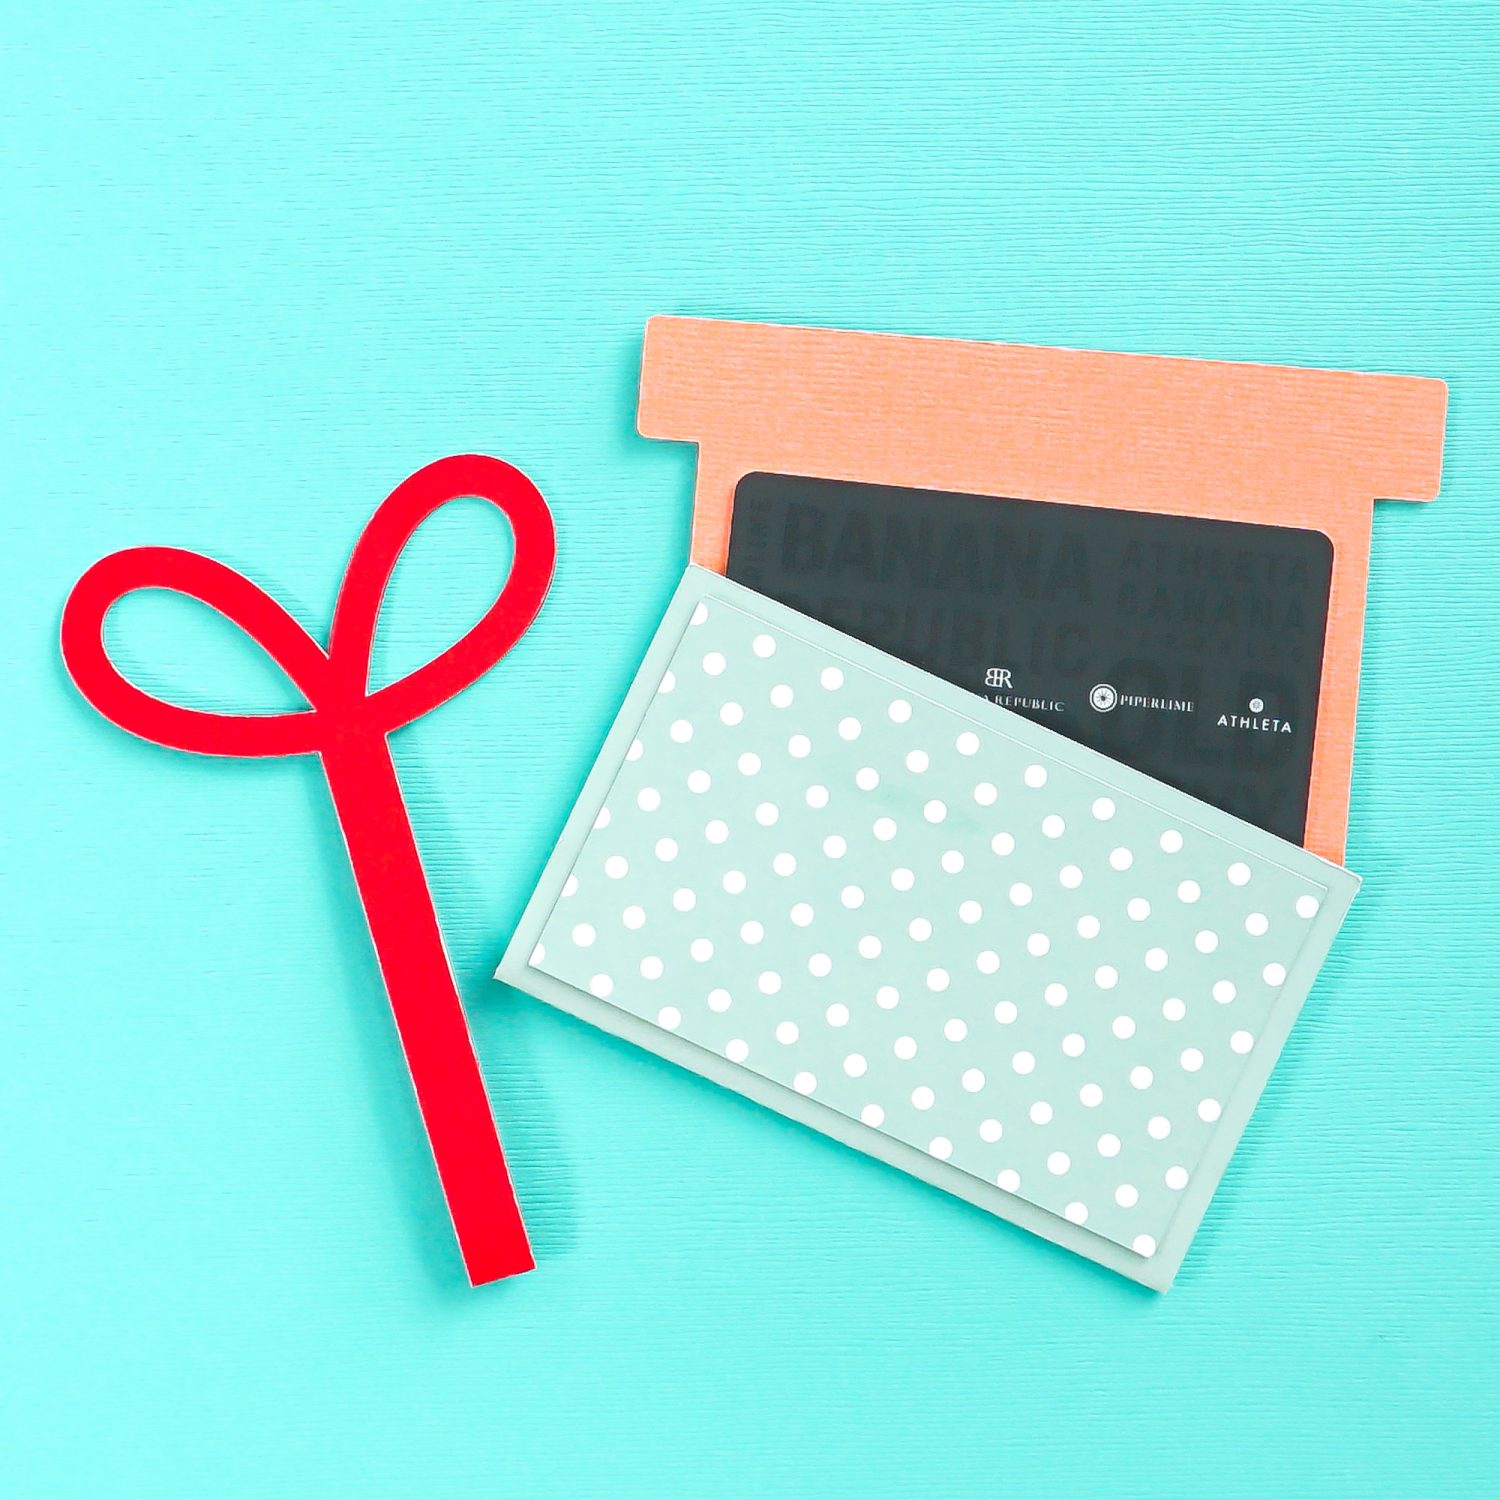 Finished gift card holder being opened on a blue background